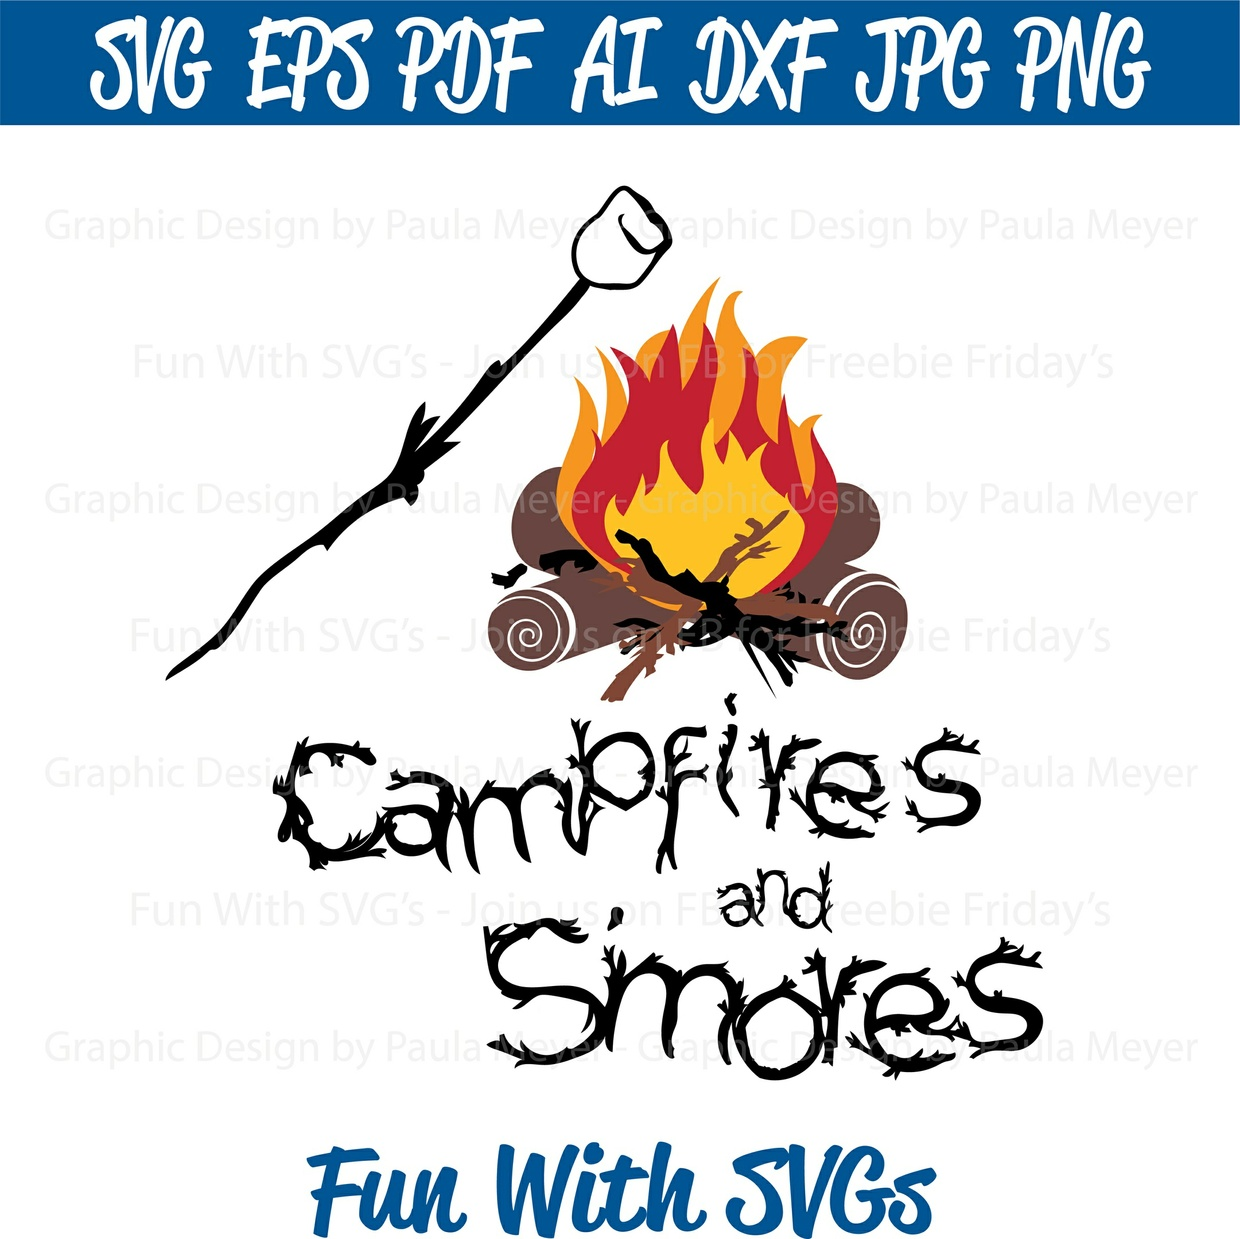 Campfires and S'mores - SVG Cut File, High Resolution Printable Graphic and Editable Vector Art